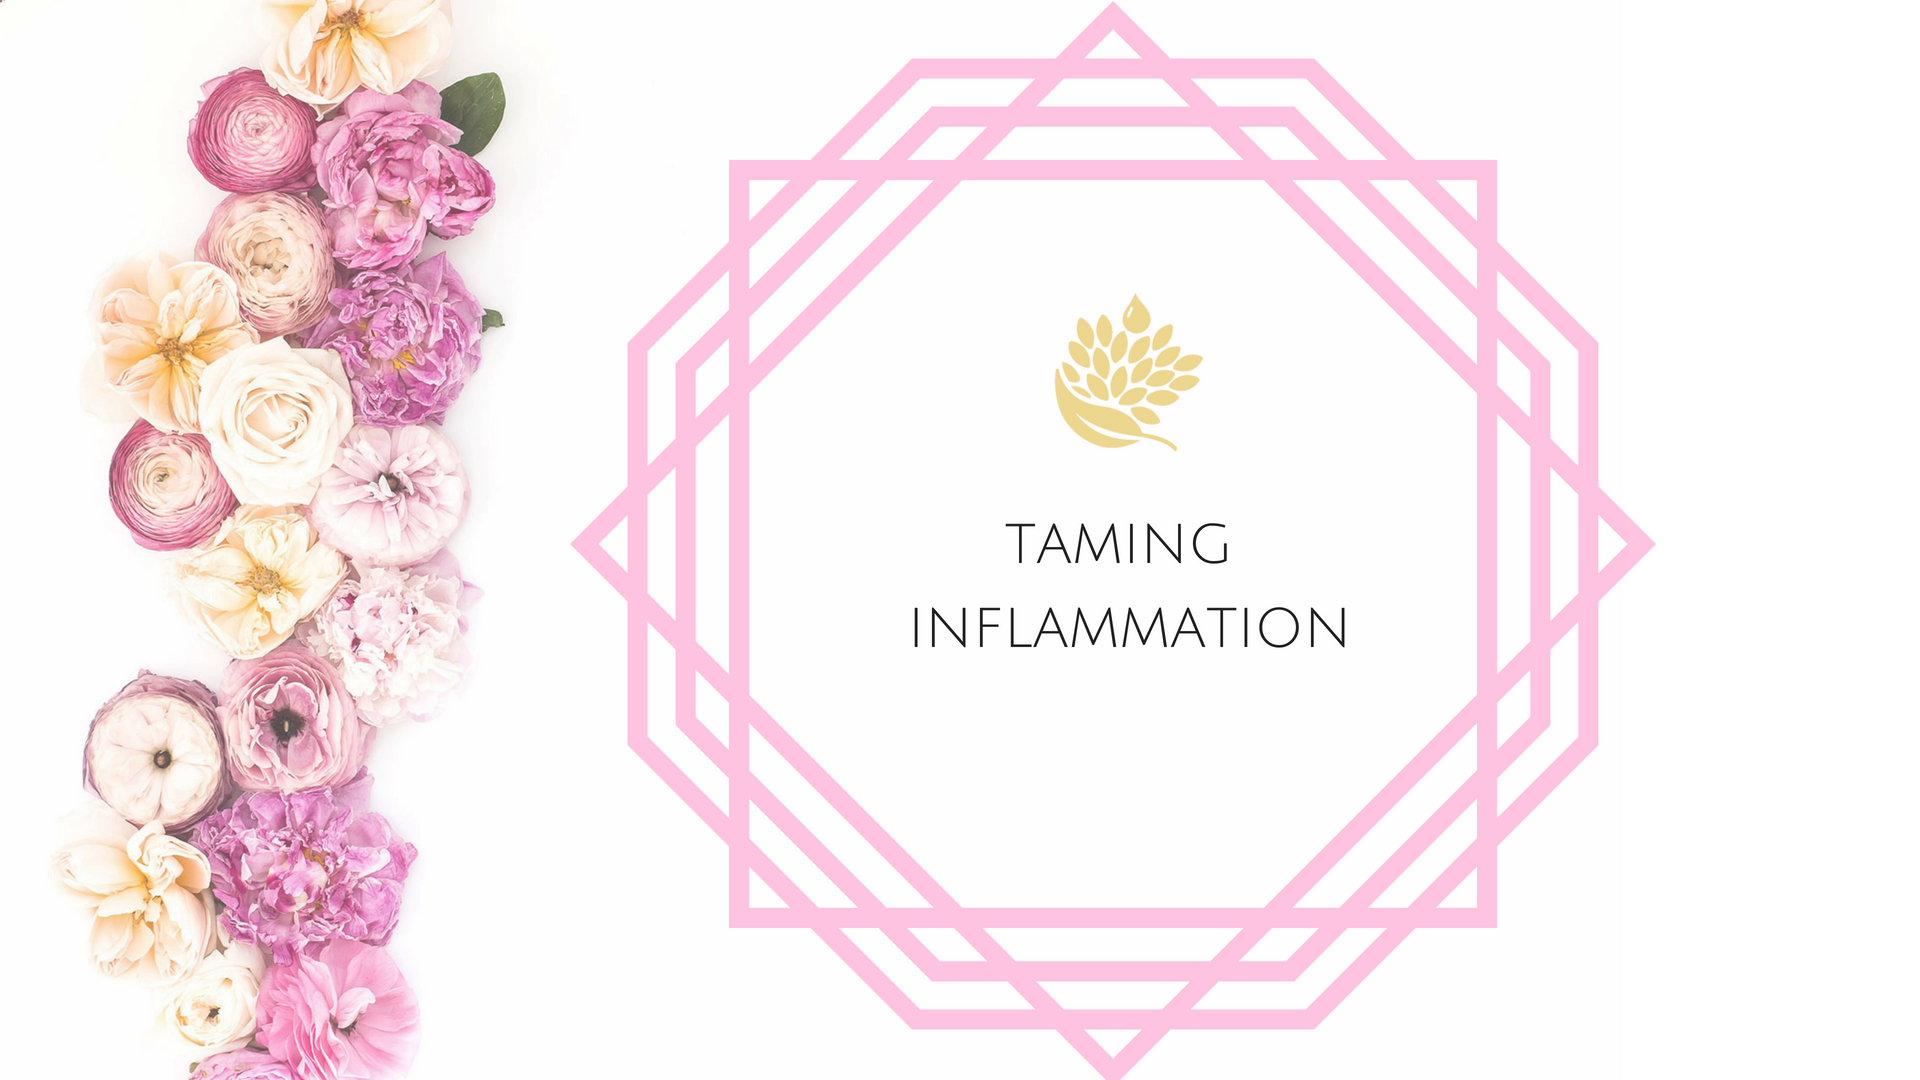 Taming Inflammation